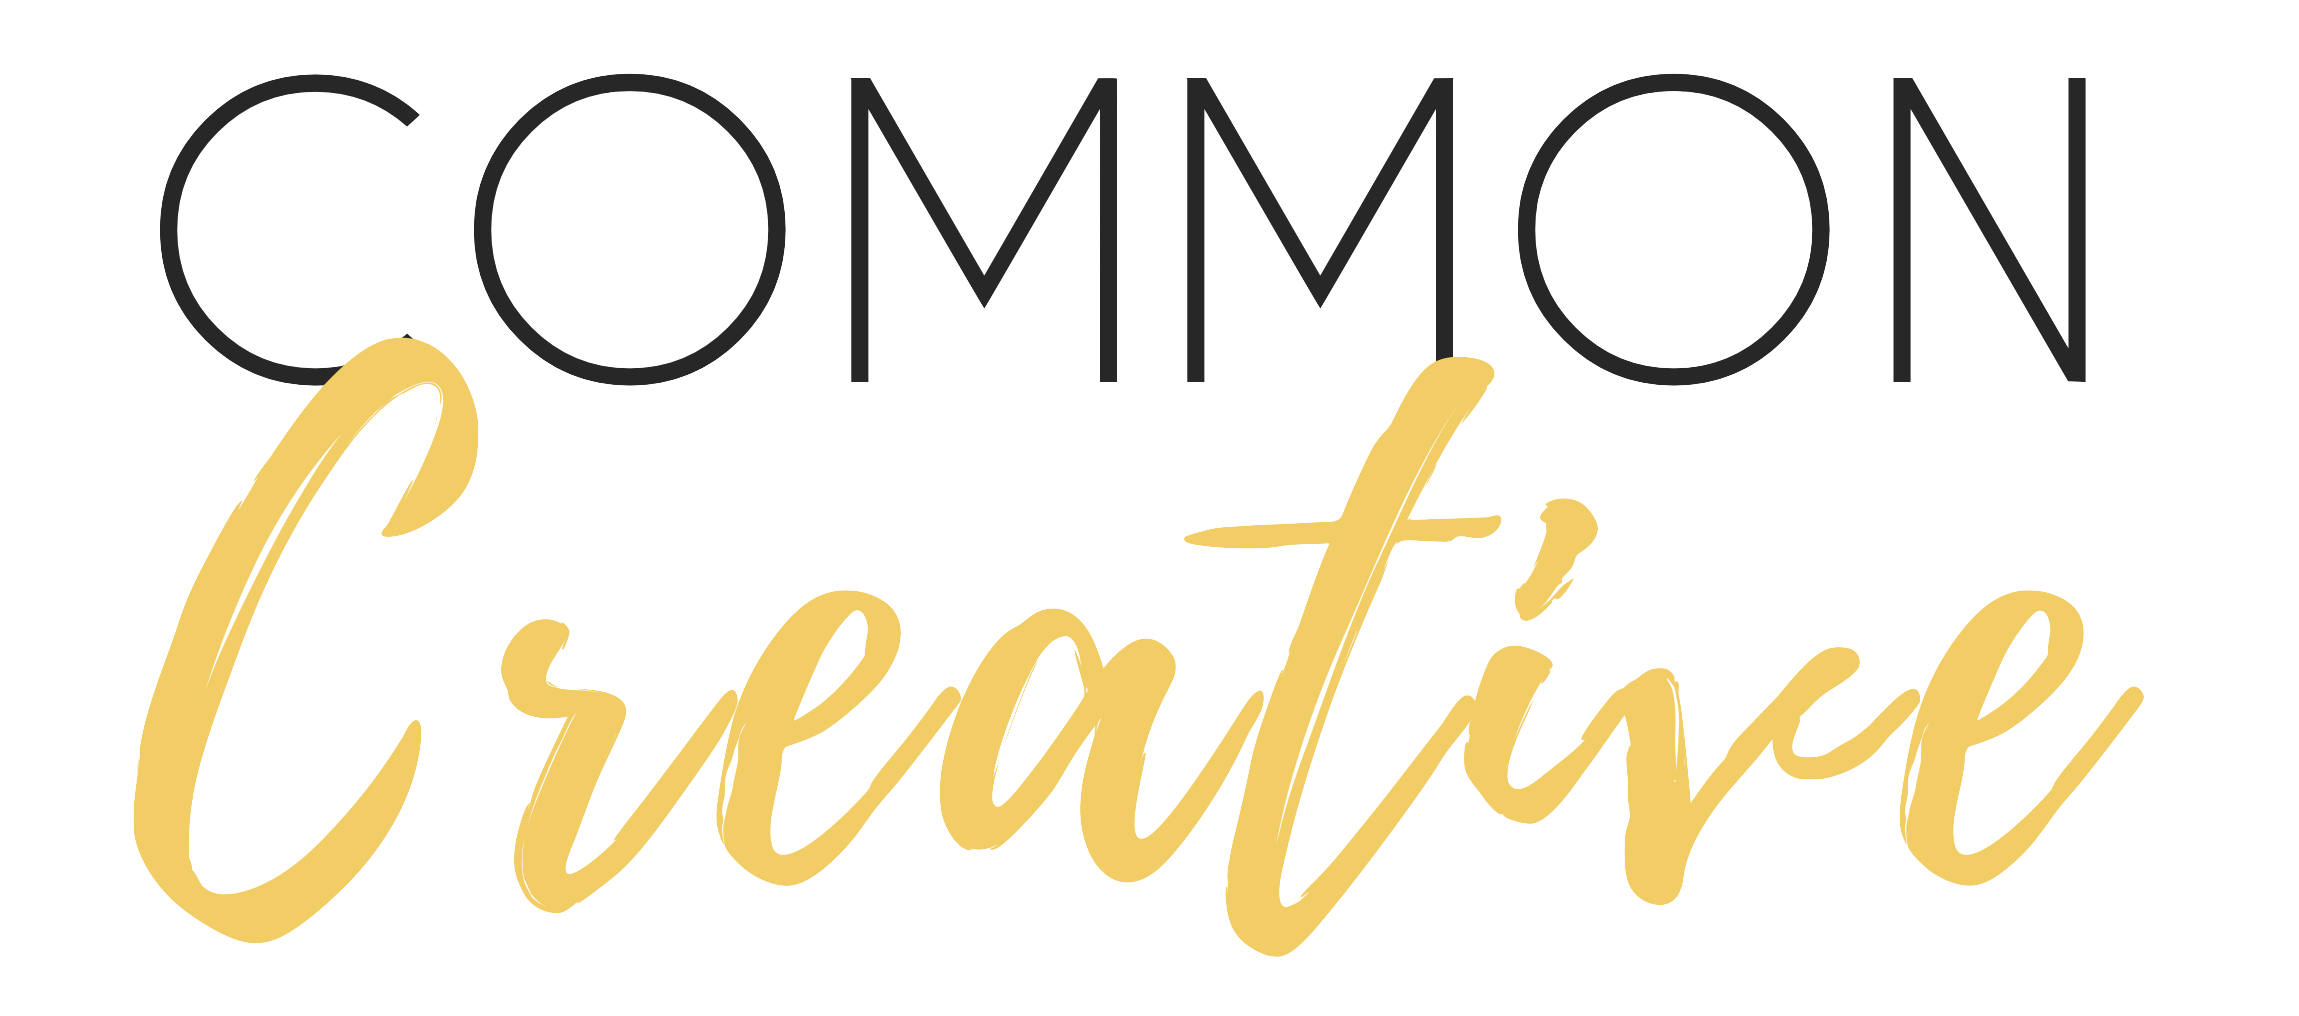 COMMON Creative is our in-house service to assist nonprofits with a wide array of needs. We can assist your nonprofit with fundraising ideas, marketing plans, and capacity building. Also available is low cost printing/copying services starting at $0.01/sheet for black & white, $0.05/sheet for color.